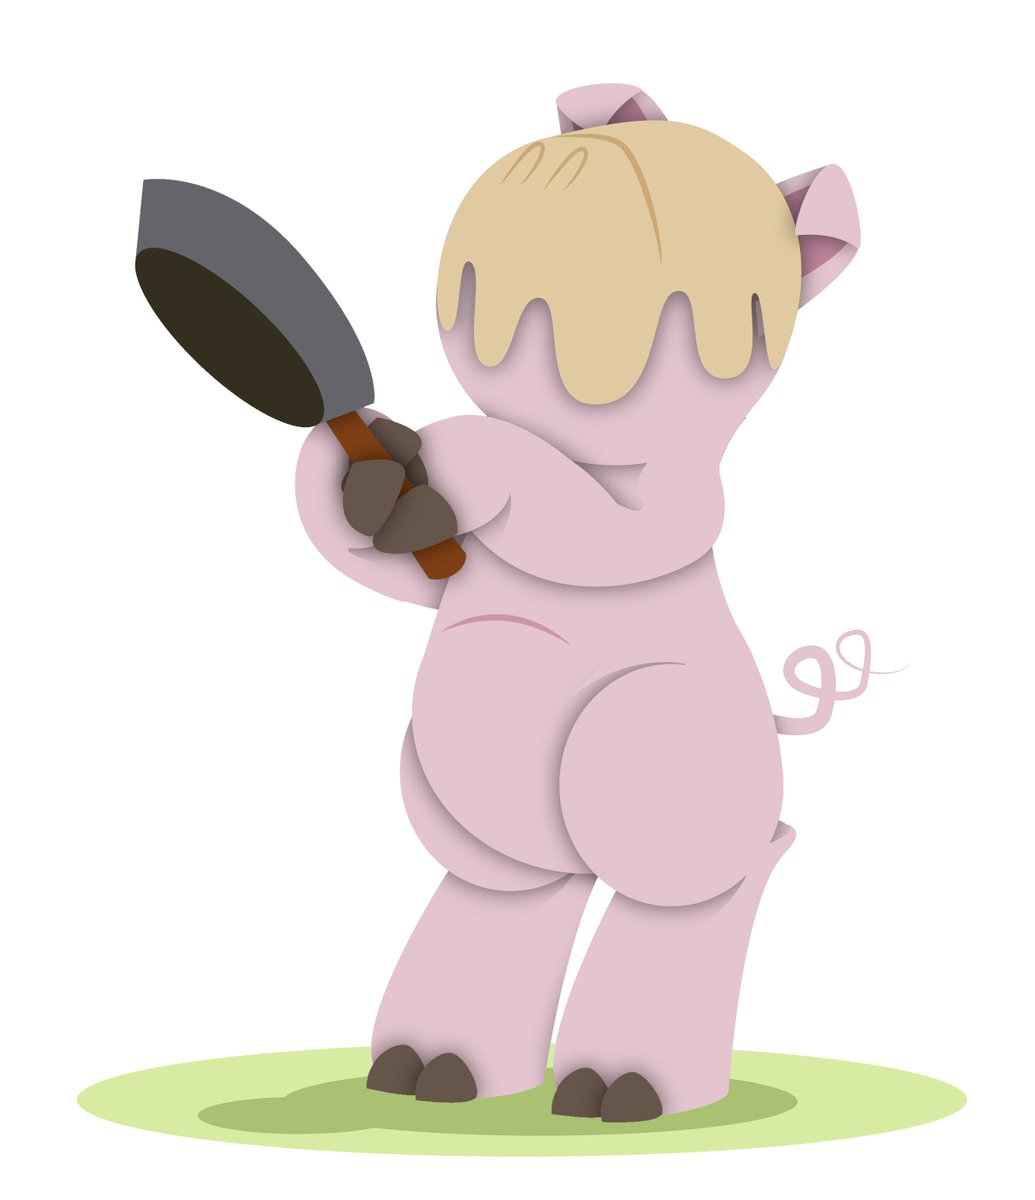 Ashamed to admit that I totally forgot it was #pancakeday2018 last tuesday! #BotoPink #colour_collective #vectorart #cartoon #illustration<br>http://pic.twitter.com/O7ruz2nHpN